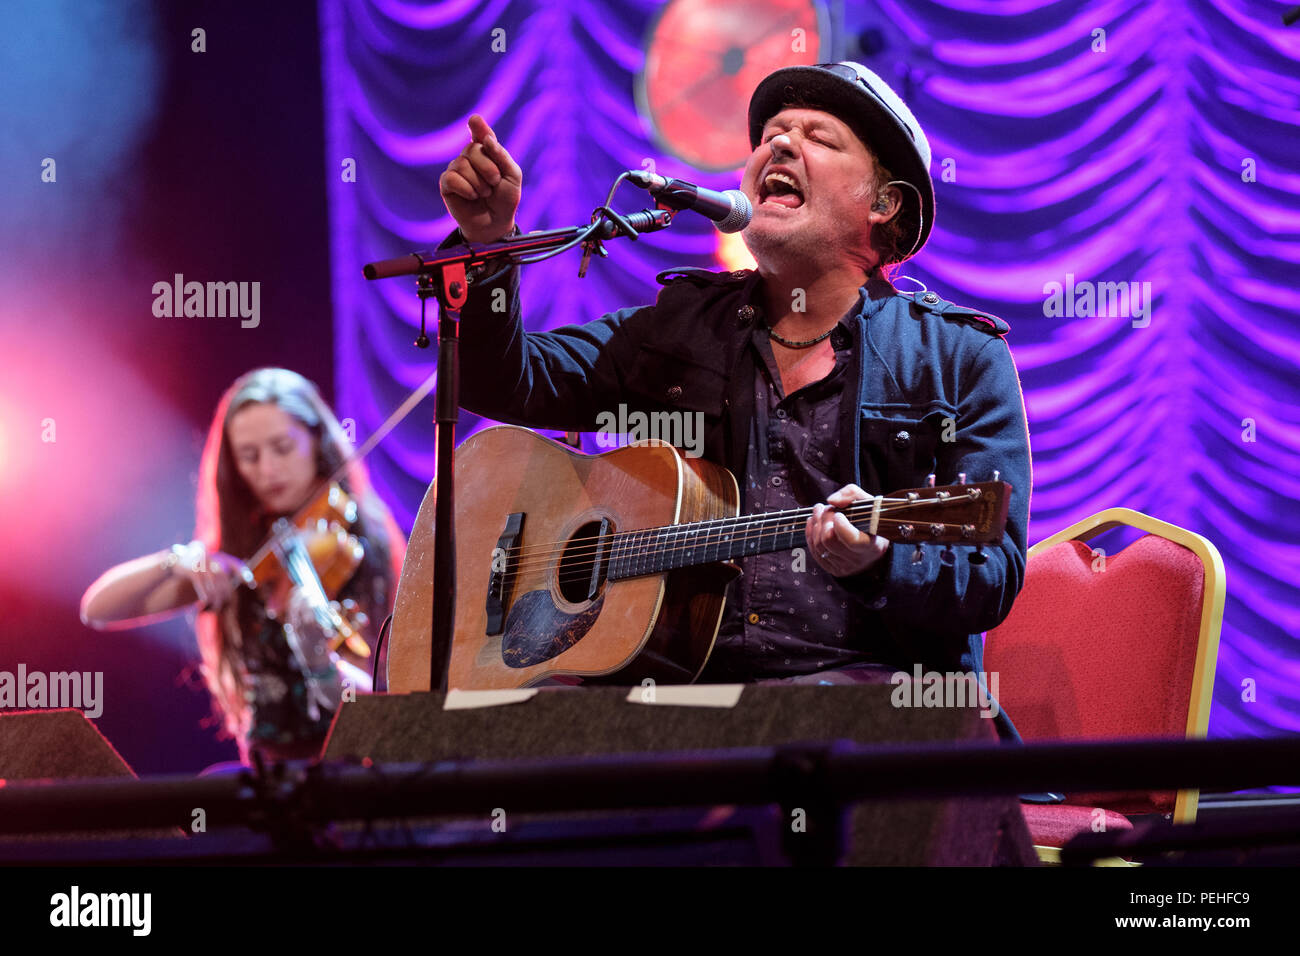 The Levellers performing at Fairport's Cropredy Convention, England, UK. August 10, 2018 - Stock Image